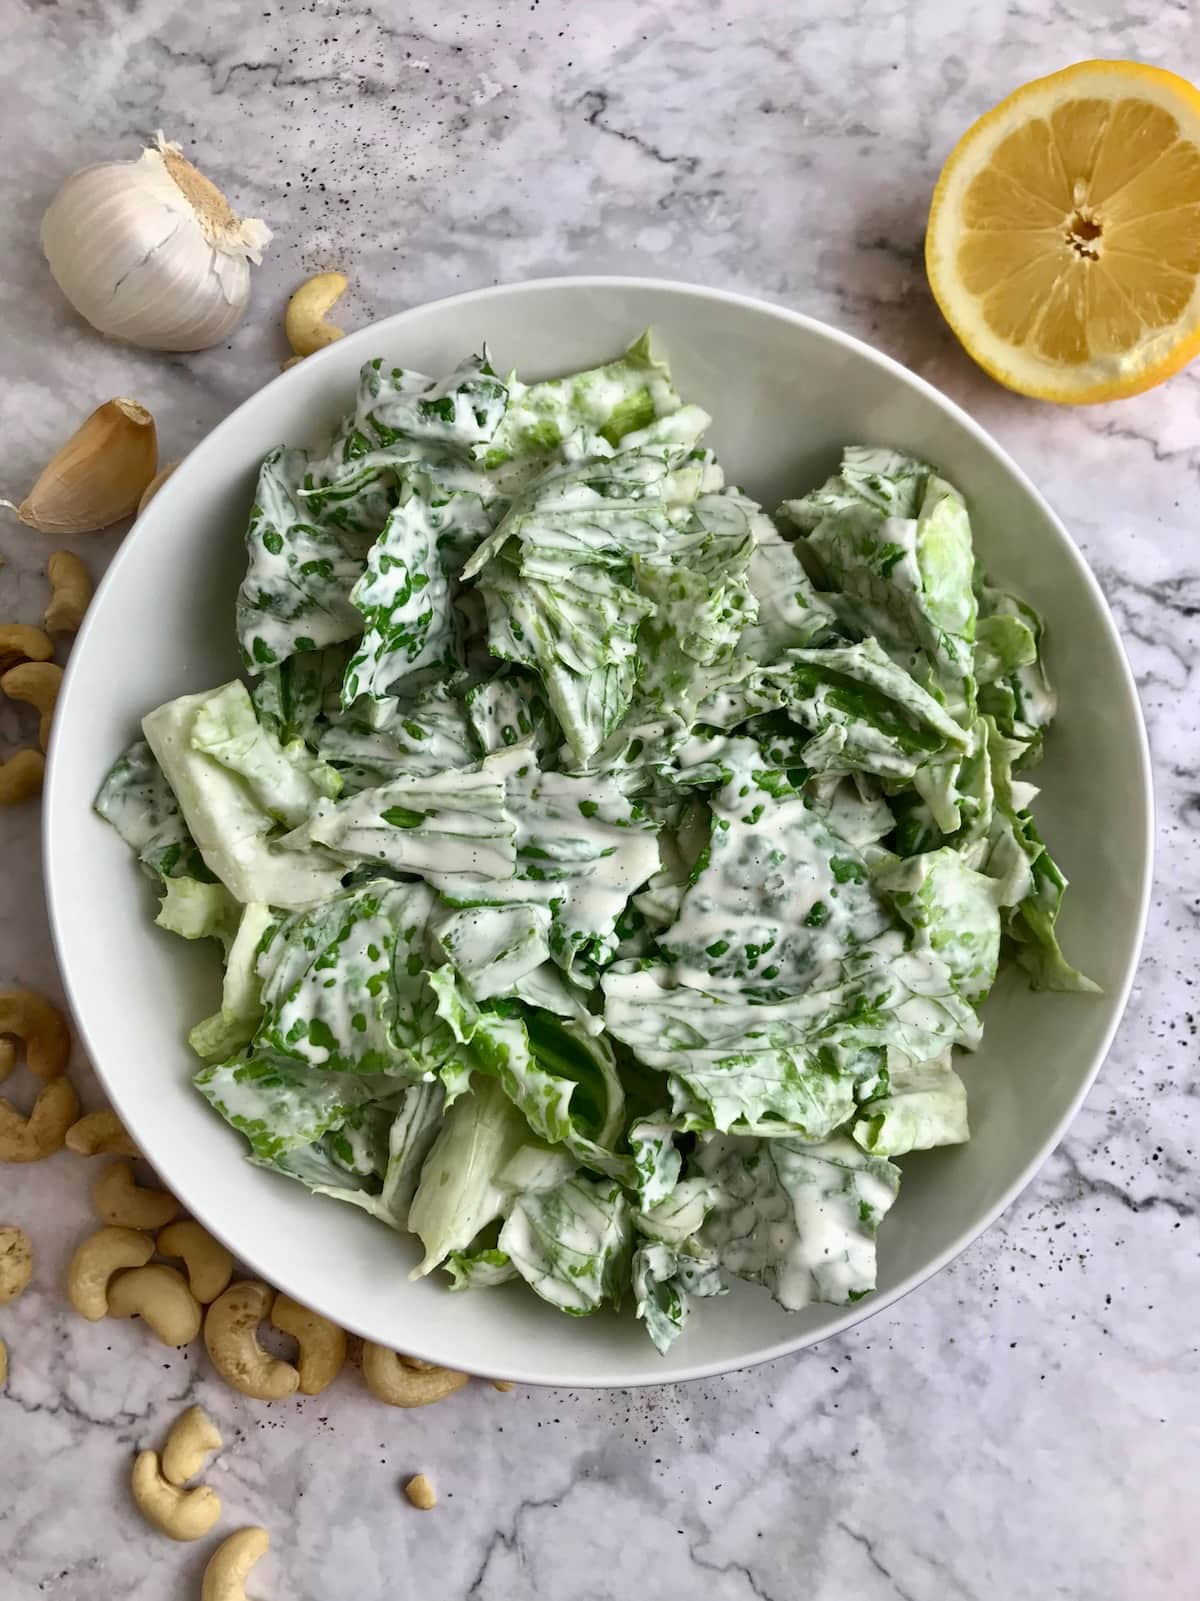 A bowl of romaine lettuce topped with white creamy dressing, and cashews, garlic, and lemon on the table.